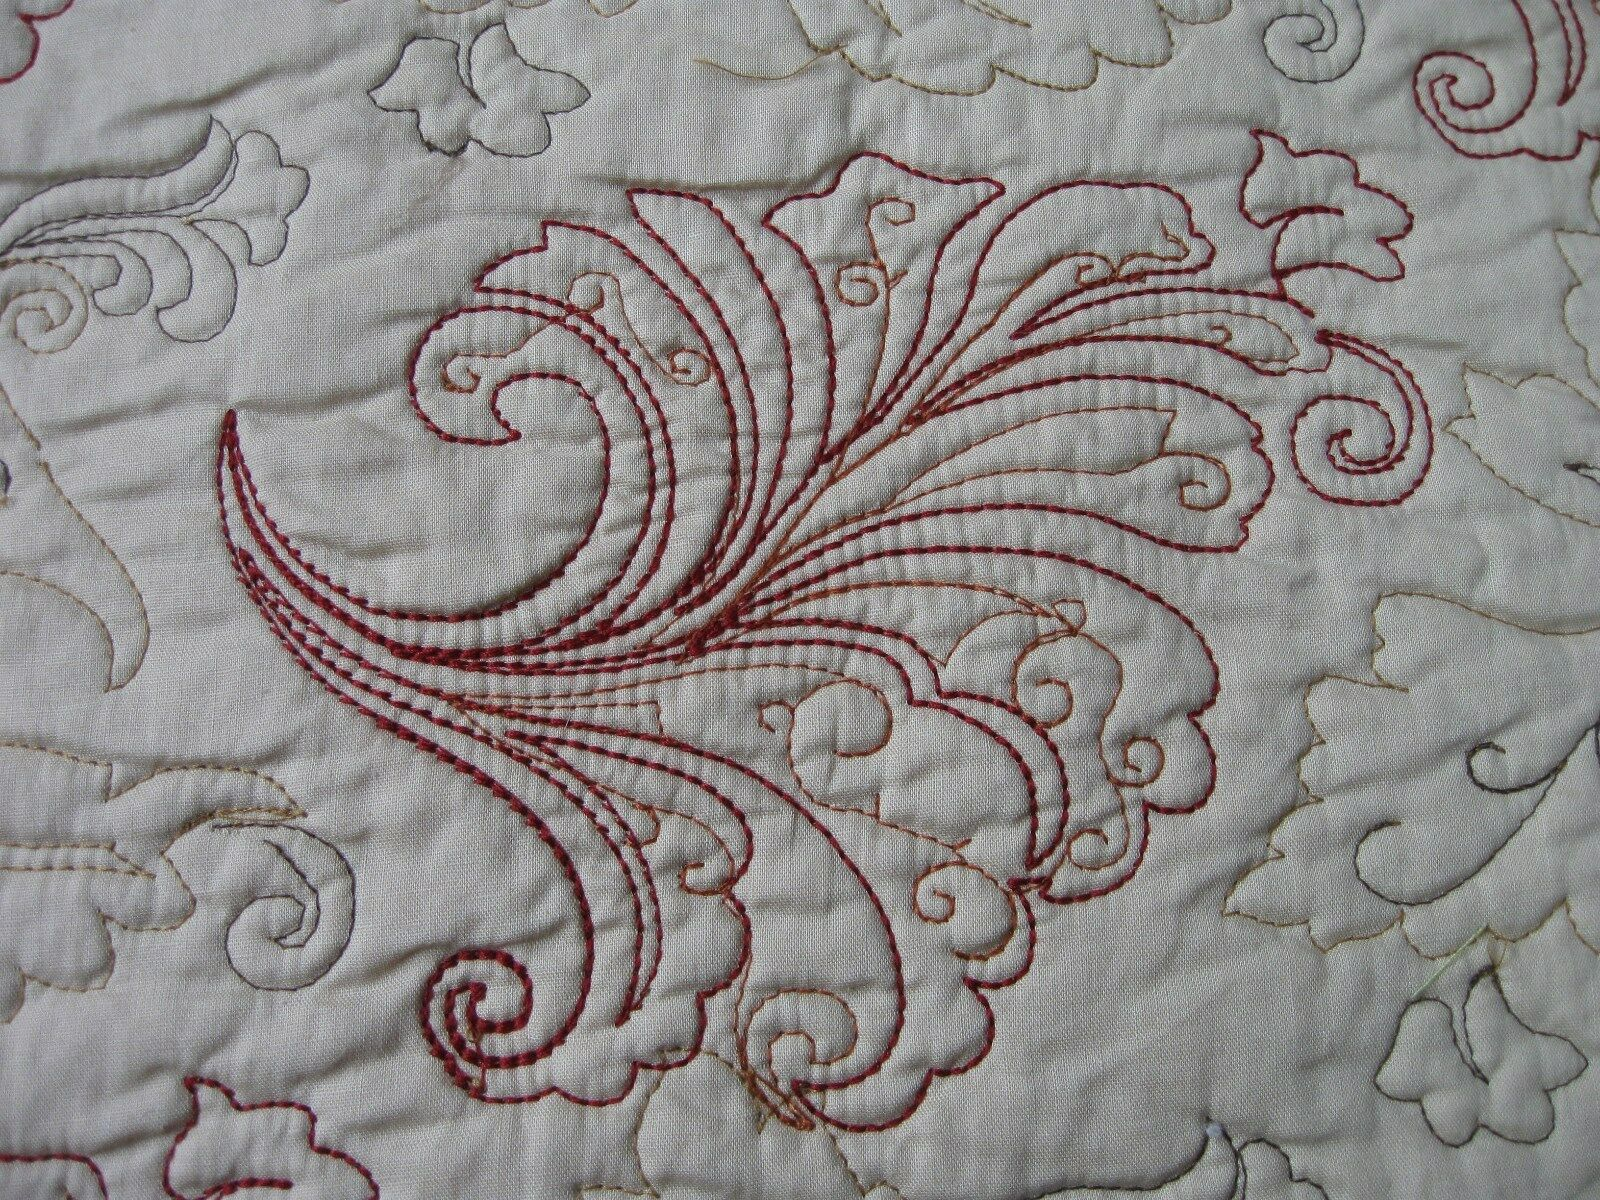 New American goldrush Oversize Queen Size Quilt - Price Reduced Again